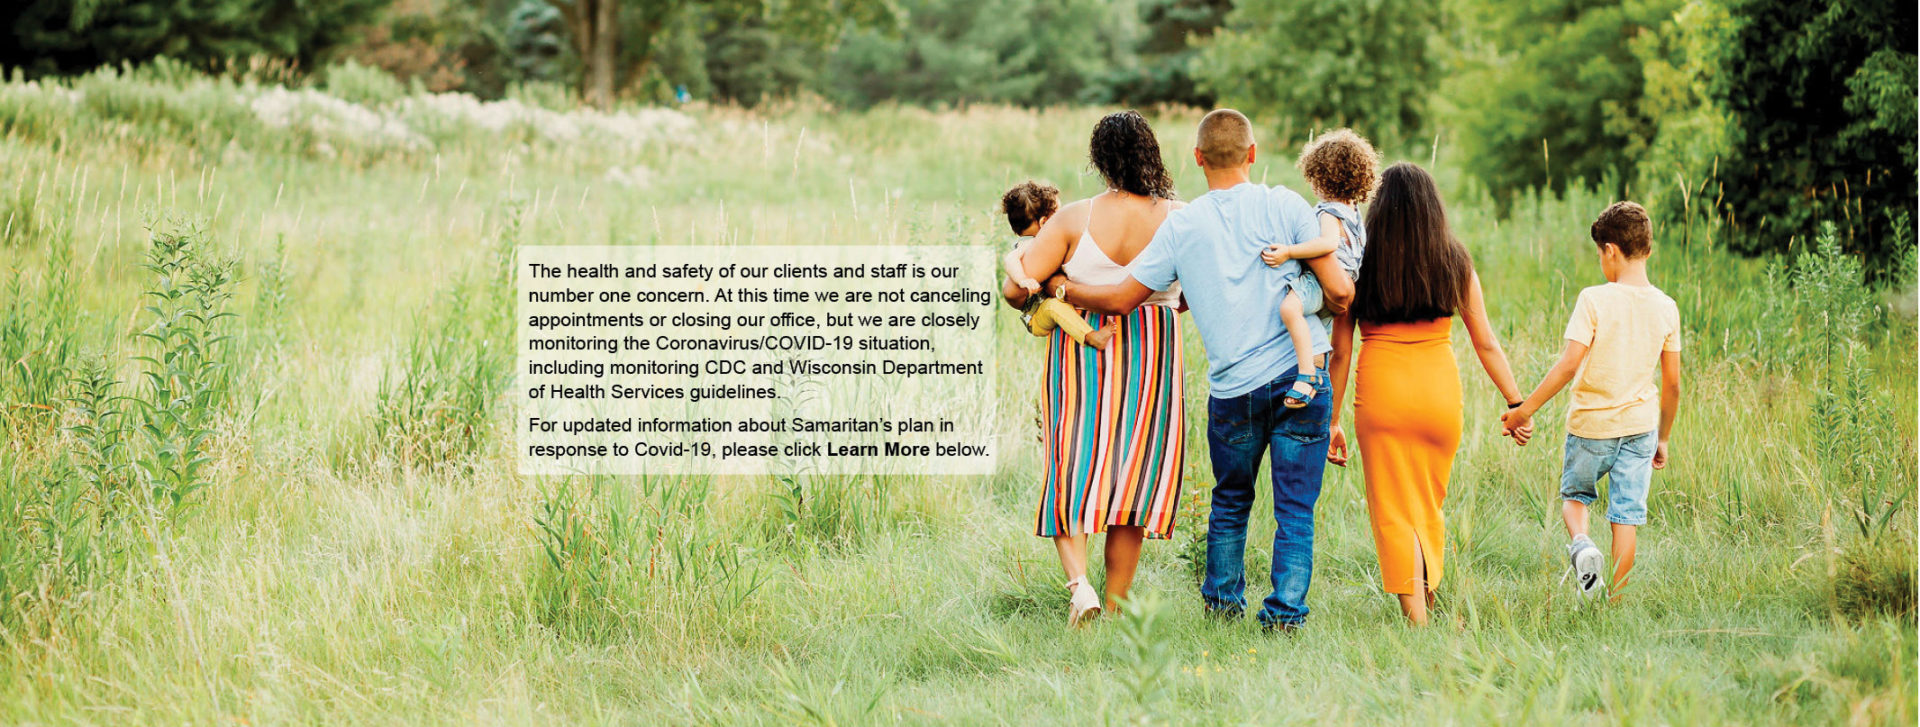 A Message from our Executive Director